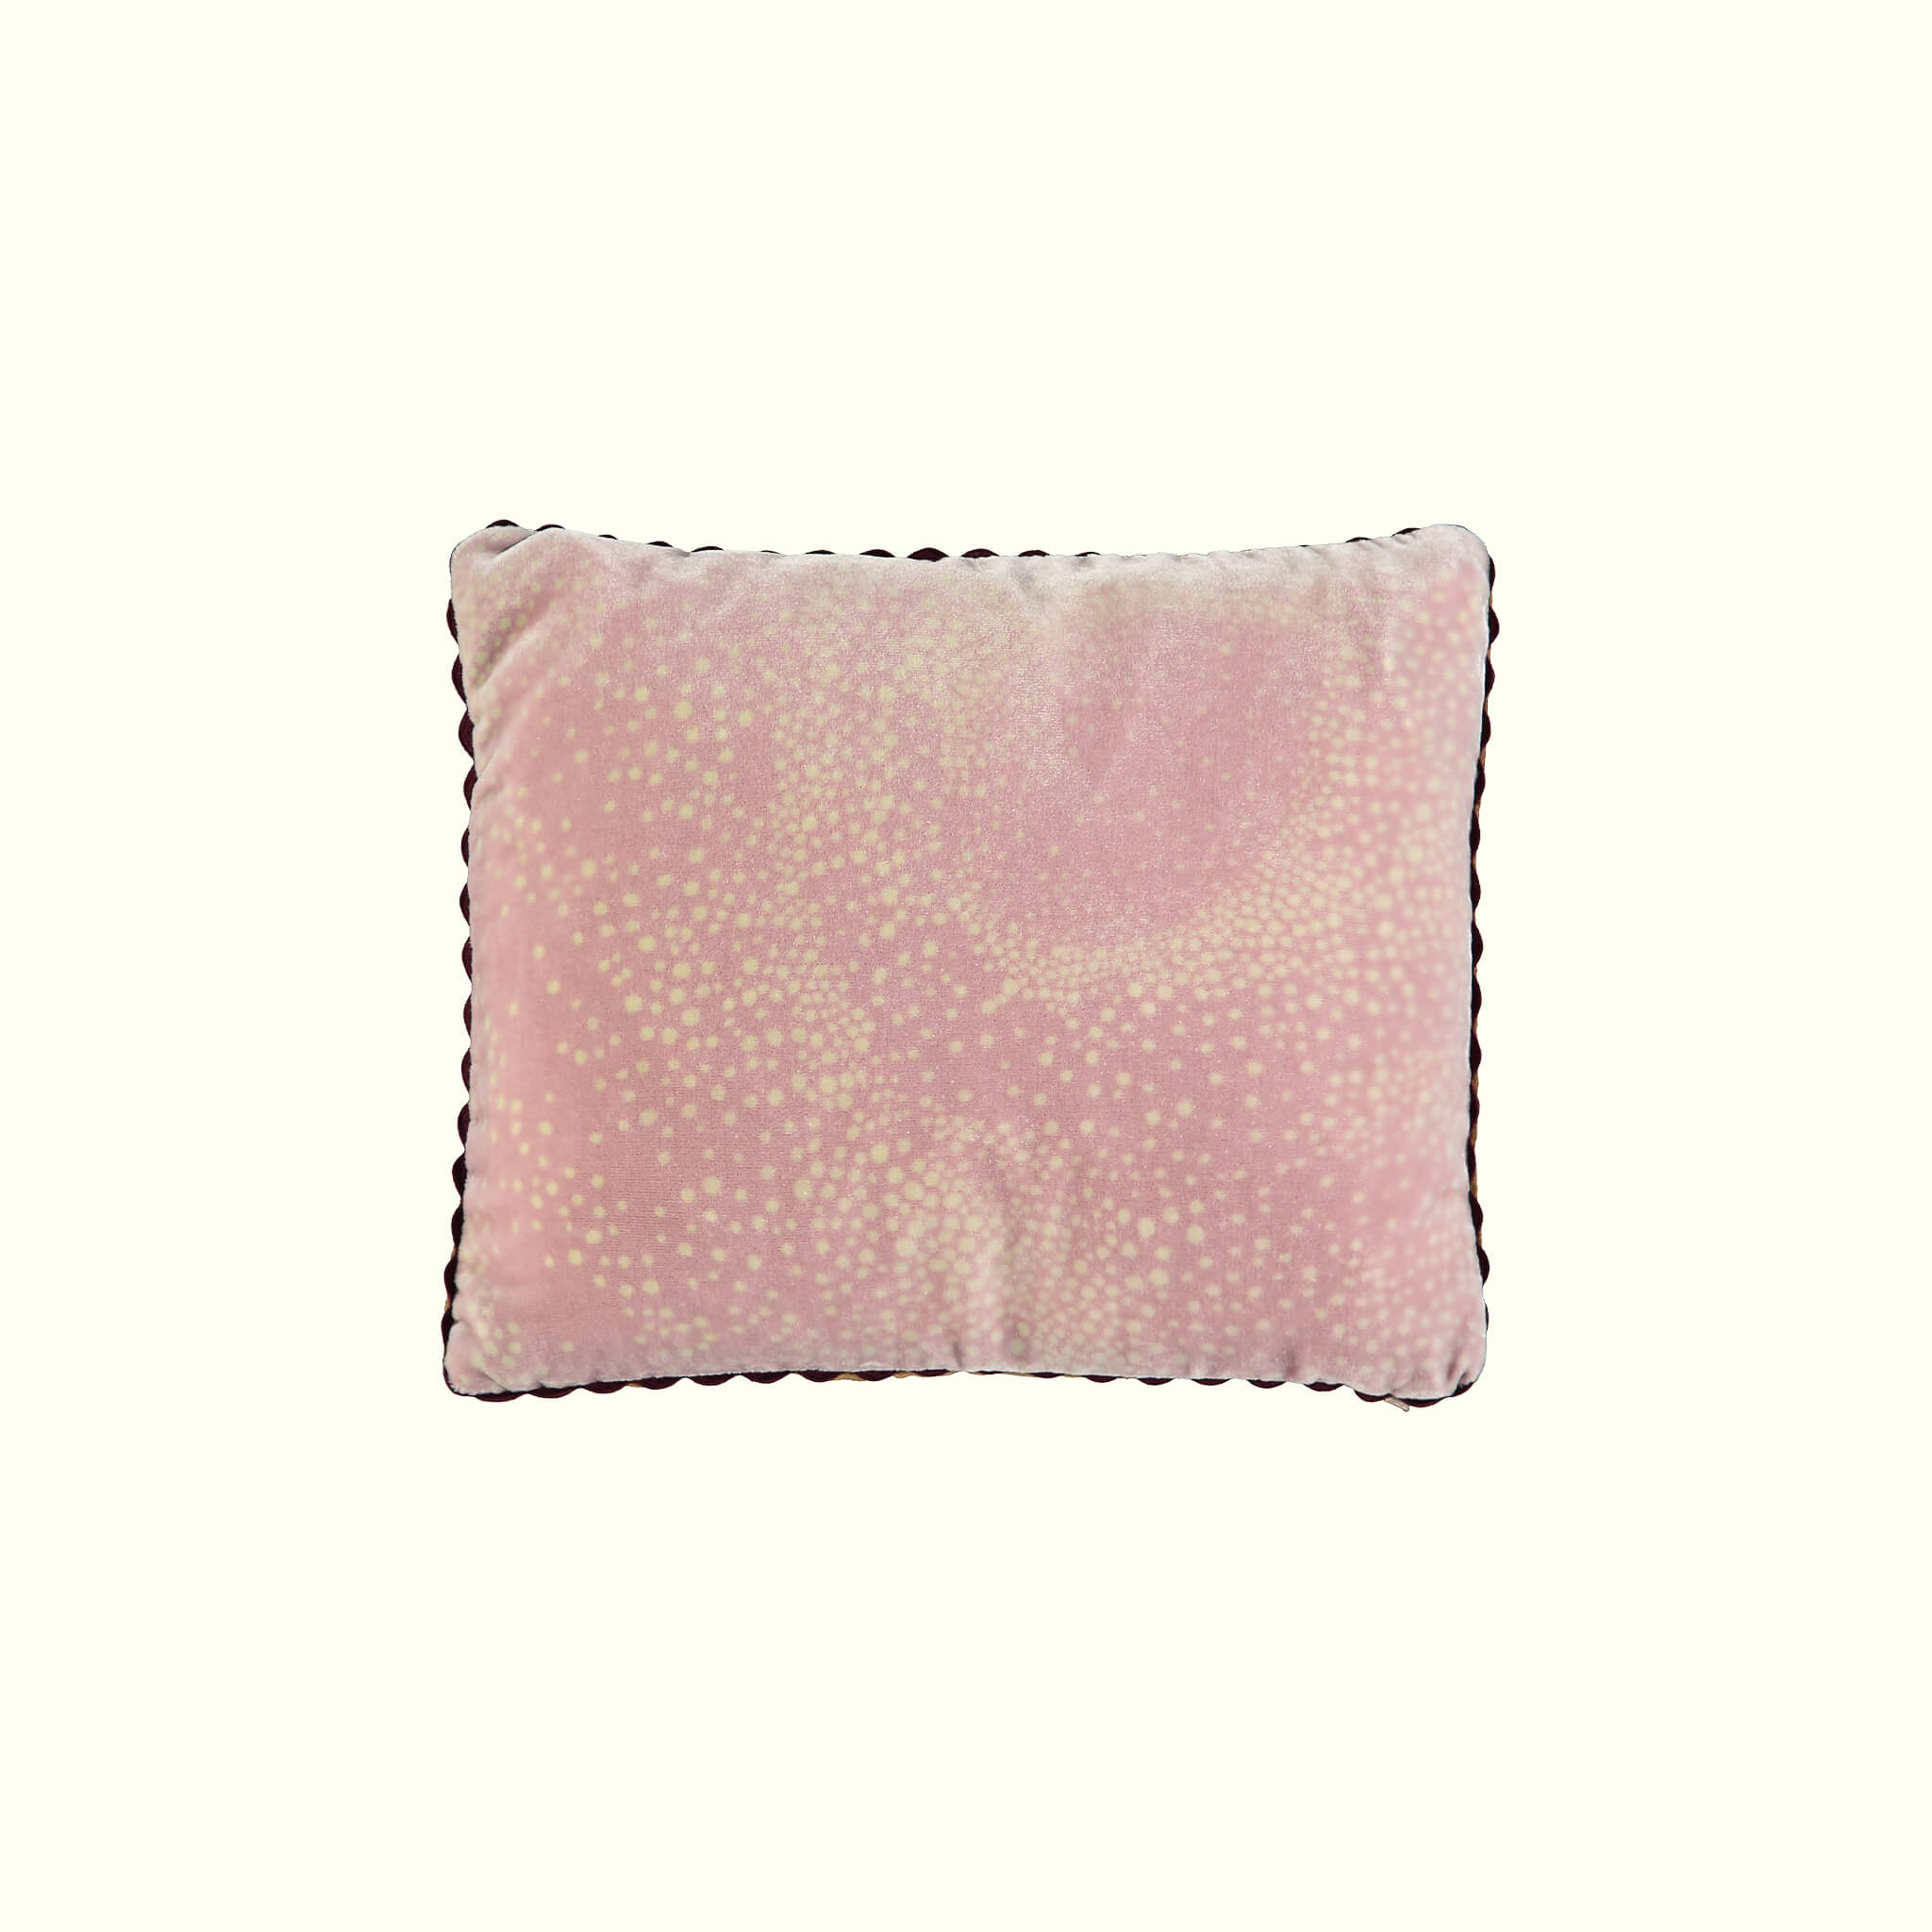 A luxury British silk velvet travel pillow by GVE in dusty pink Aurora print design.